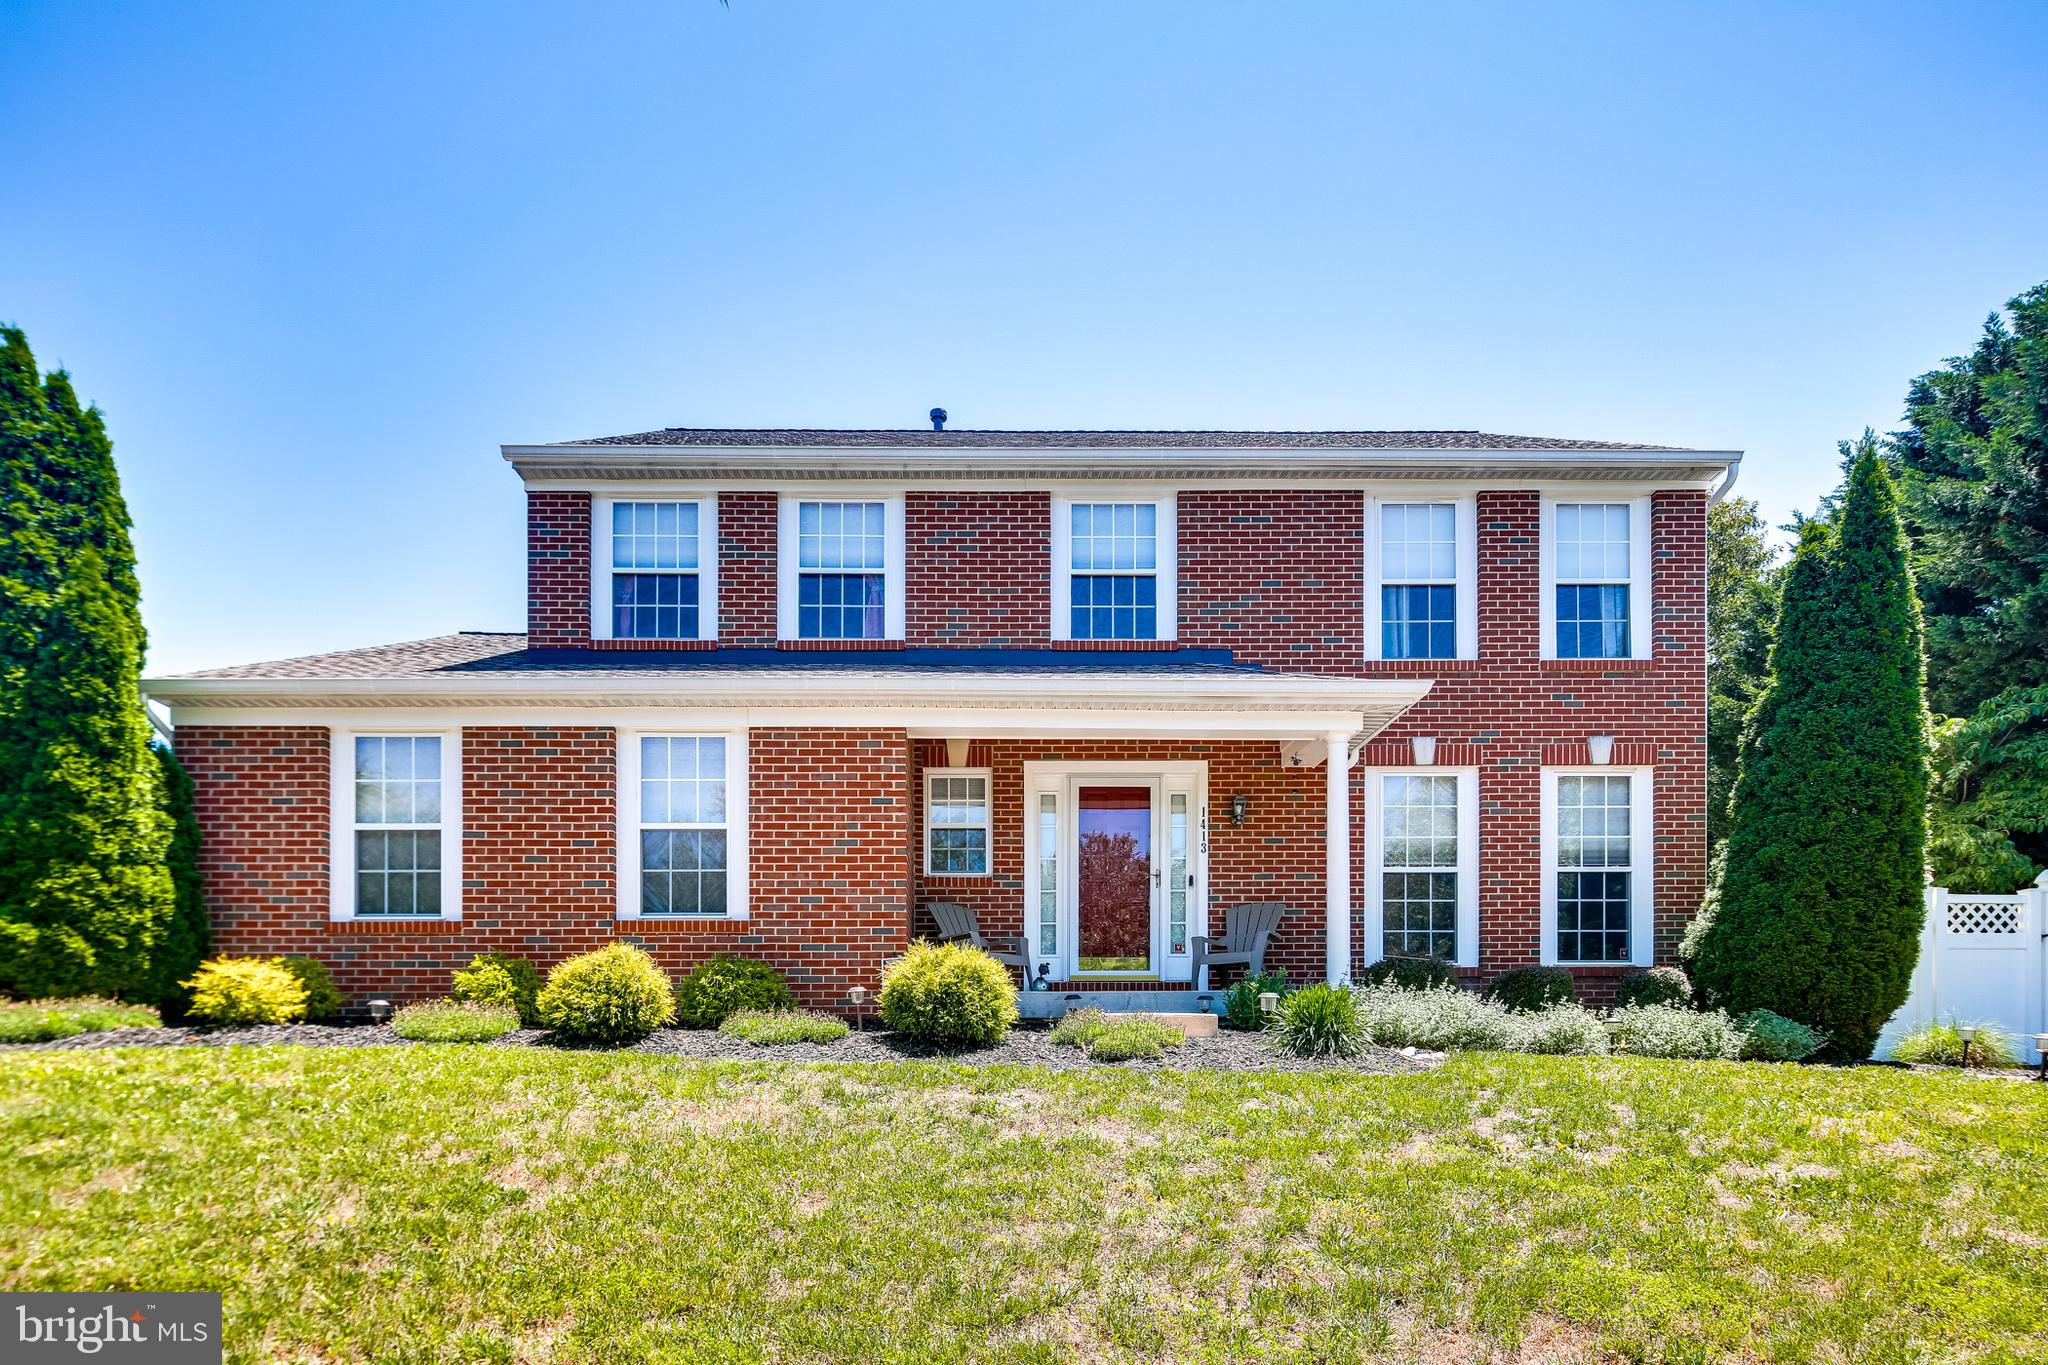 DON'T MISS THIS ONE. FANTASTIC, move-in ready 5-BEDROOM 3.5 BATHS home. Bright kitchen w/ HW floors,